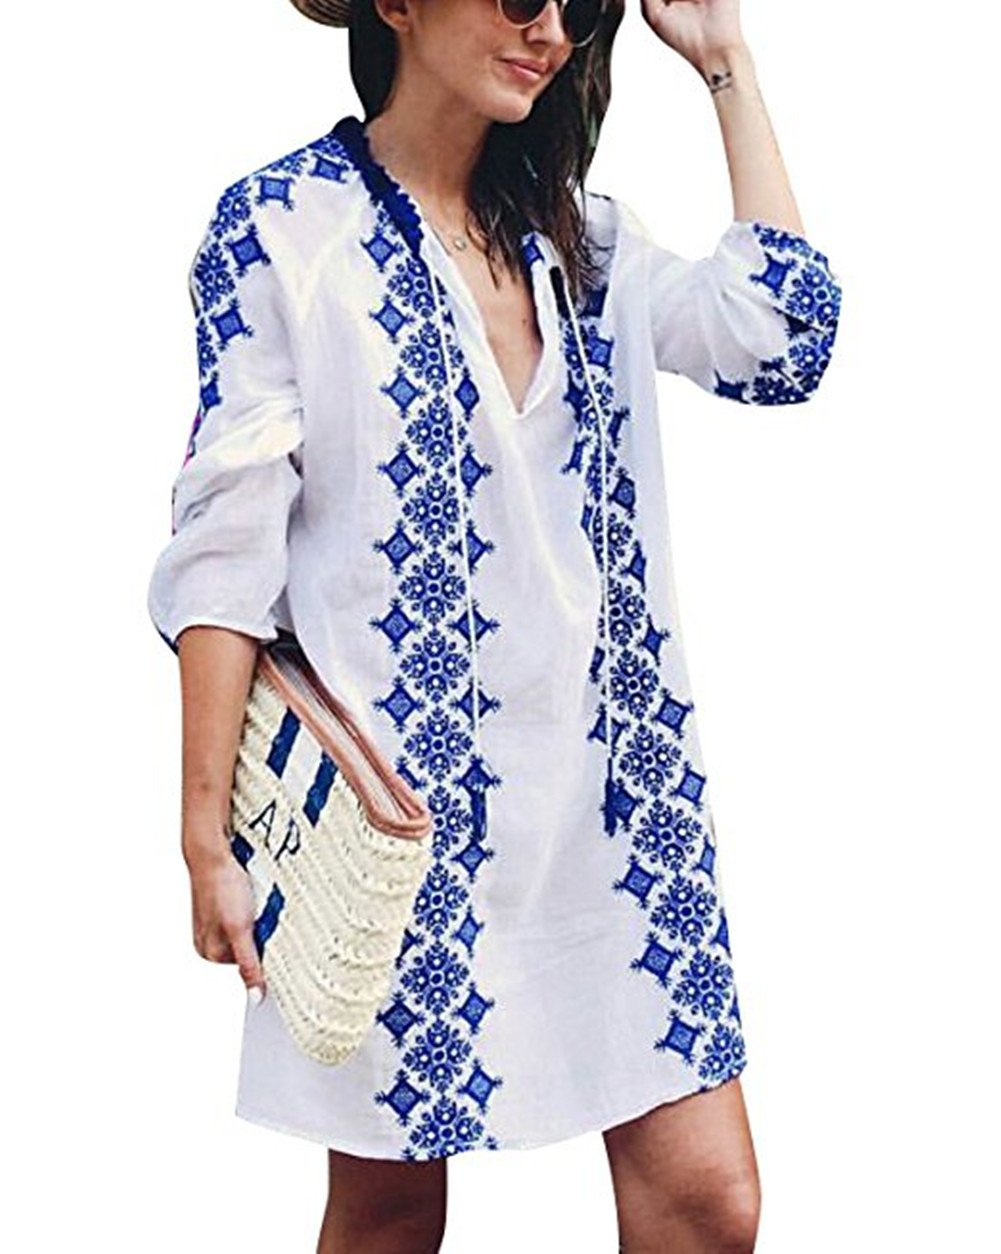 Sanifer Women's Long Sleeve Beach Cover up Dress Embroidered Bohemian Beachwear Bathing Suits Cover Ups (US S-M)